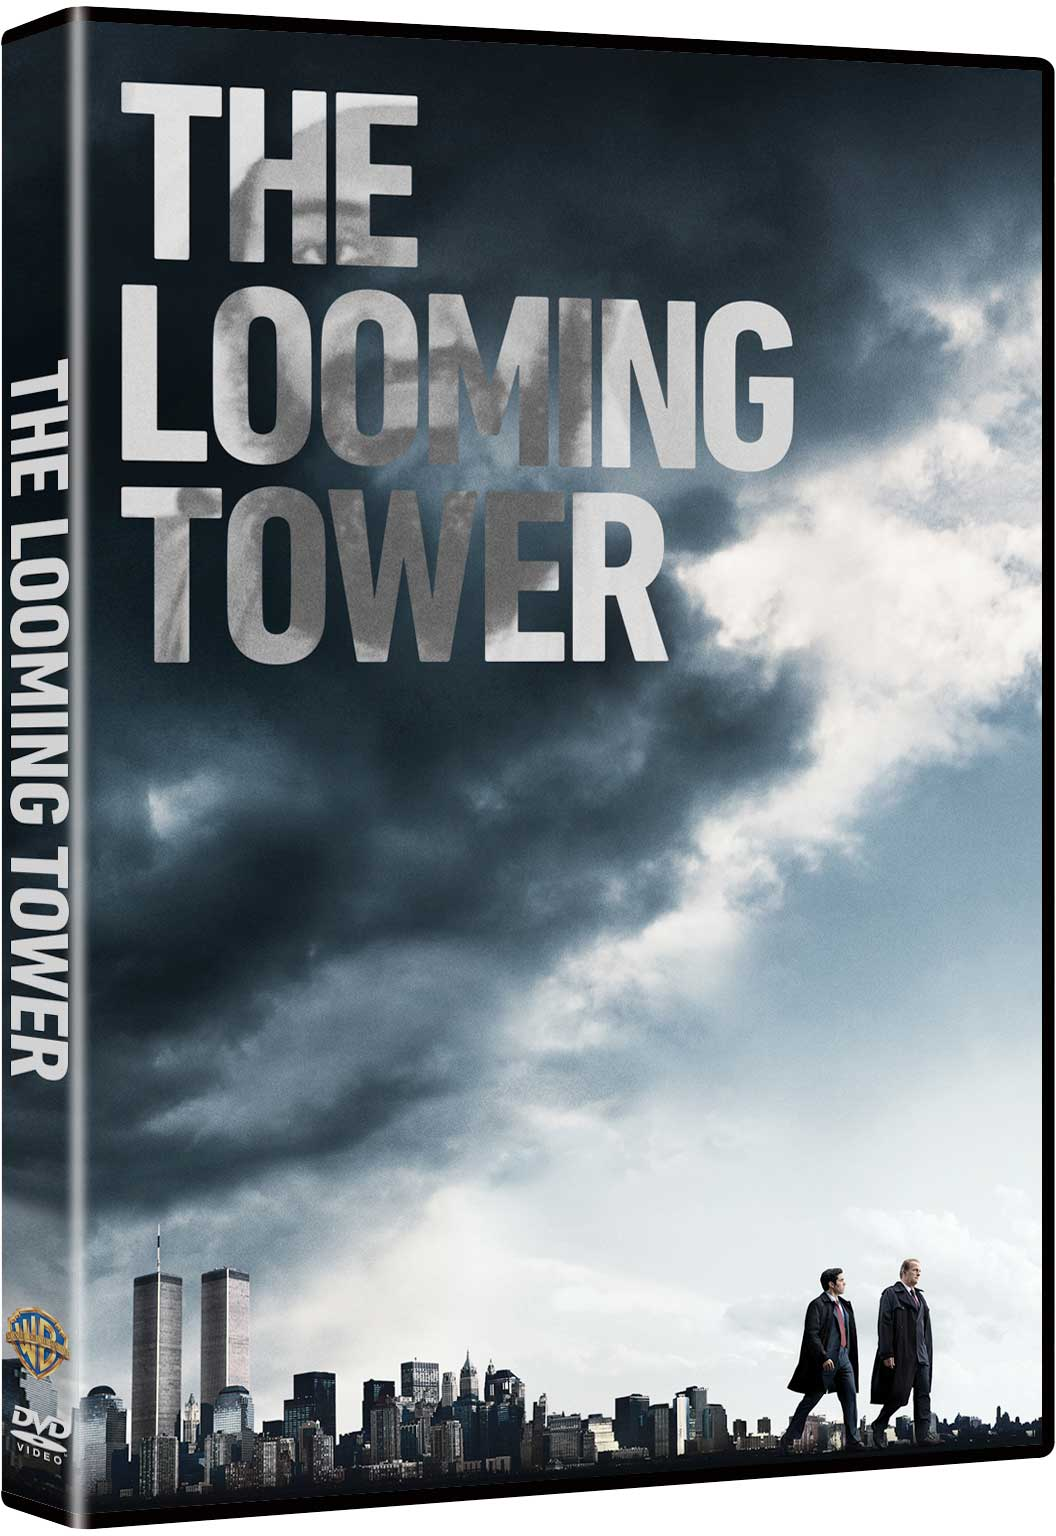 COF.THE LOOMING TOWER - STAGIONE 01 (2 DVD) (DVD)